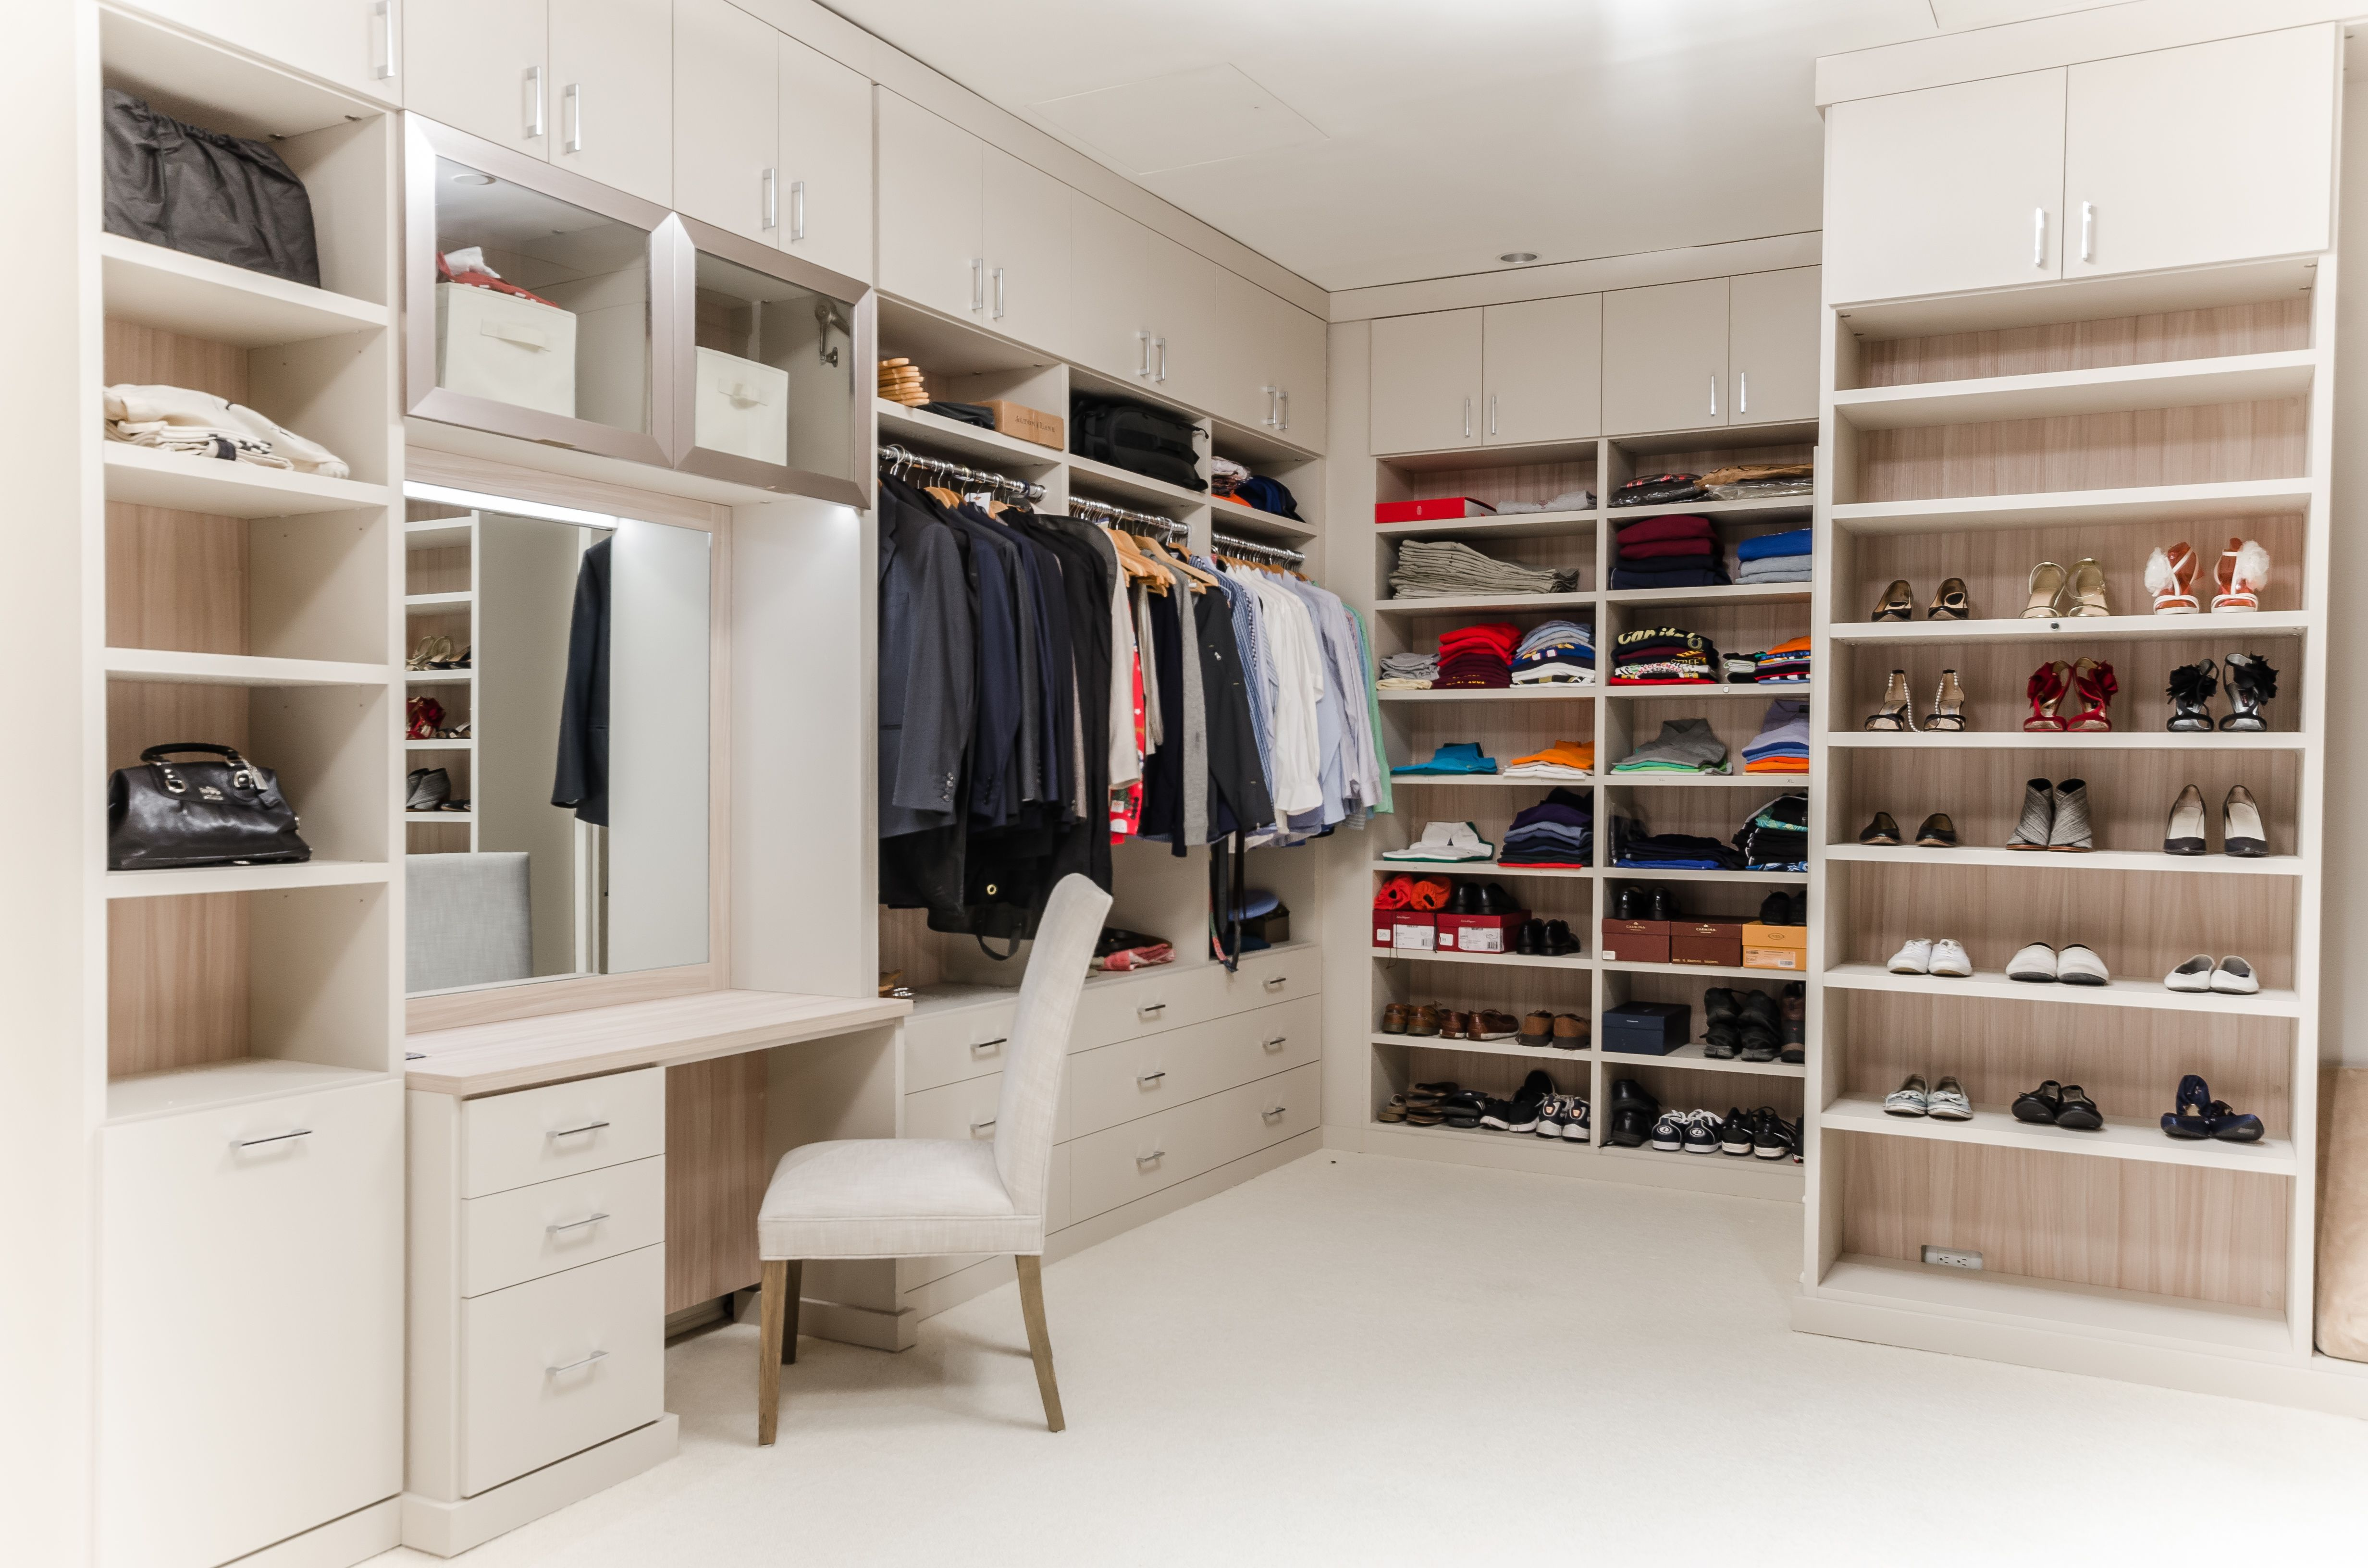 The Custom Finishes And Dimensions Incorporates The Clients Vision Into This One Of A Kind Design Custom Closet Design Closet Storage Design California Closets